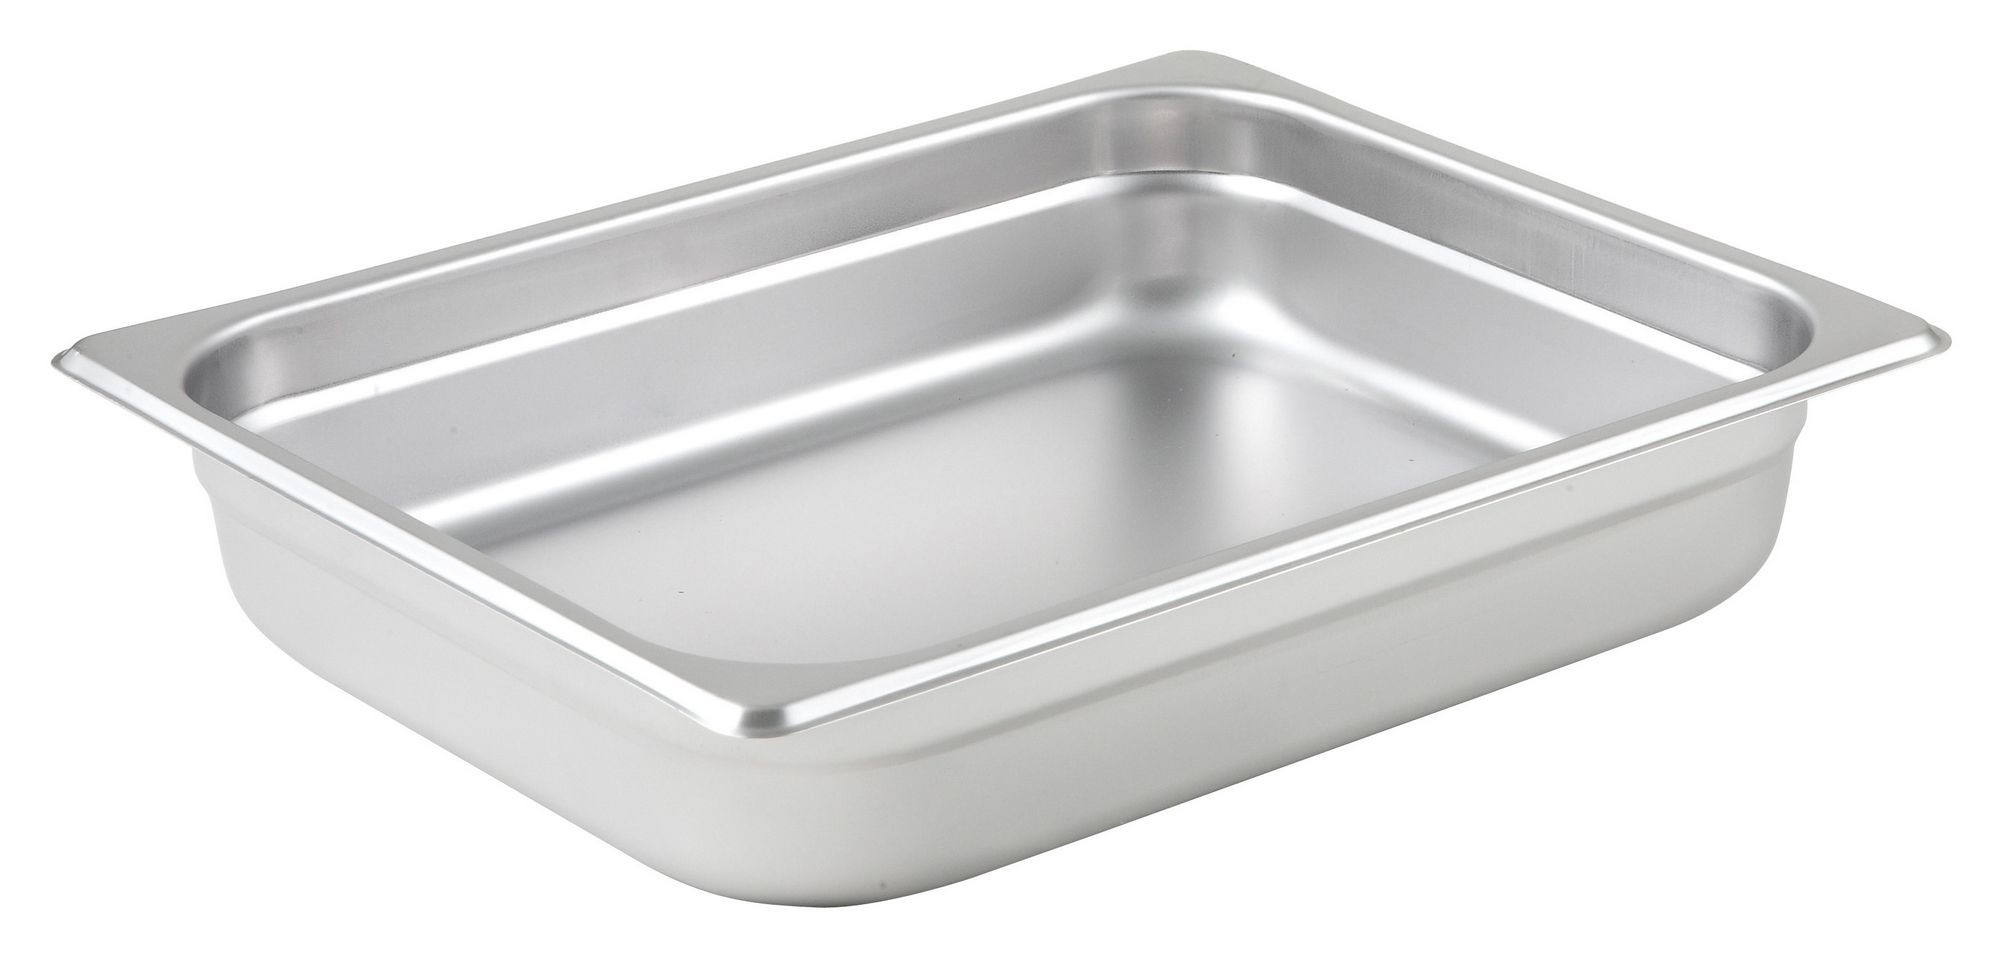 "Winco SPJM-202 1/2 Size Anti-Jam 24 Gauge Steam Table Pan 2-1/2"" Deep"